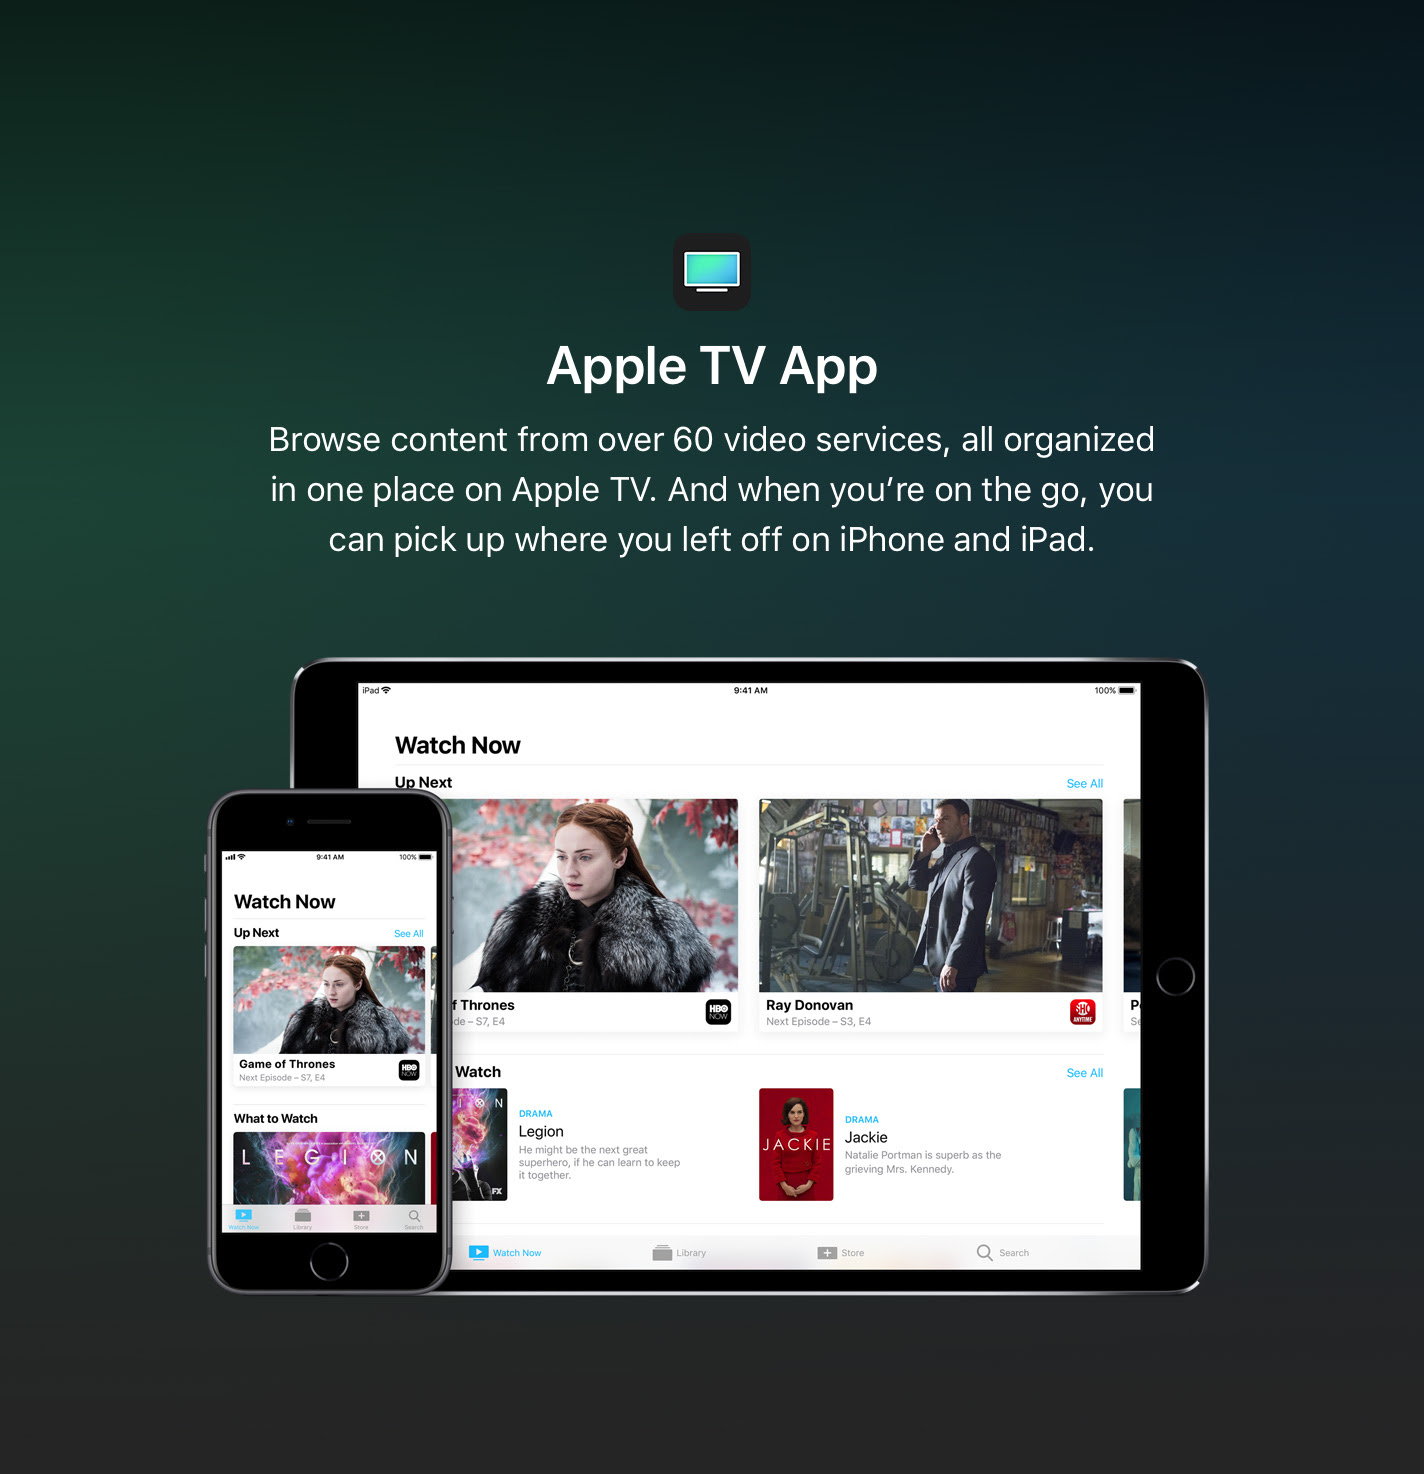 Browse content from over 60 video services, all organized in one place on Apple TV. And when you're on the go, you can pick up where you left off on iPhone and iPad.